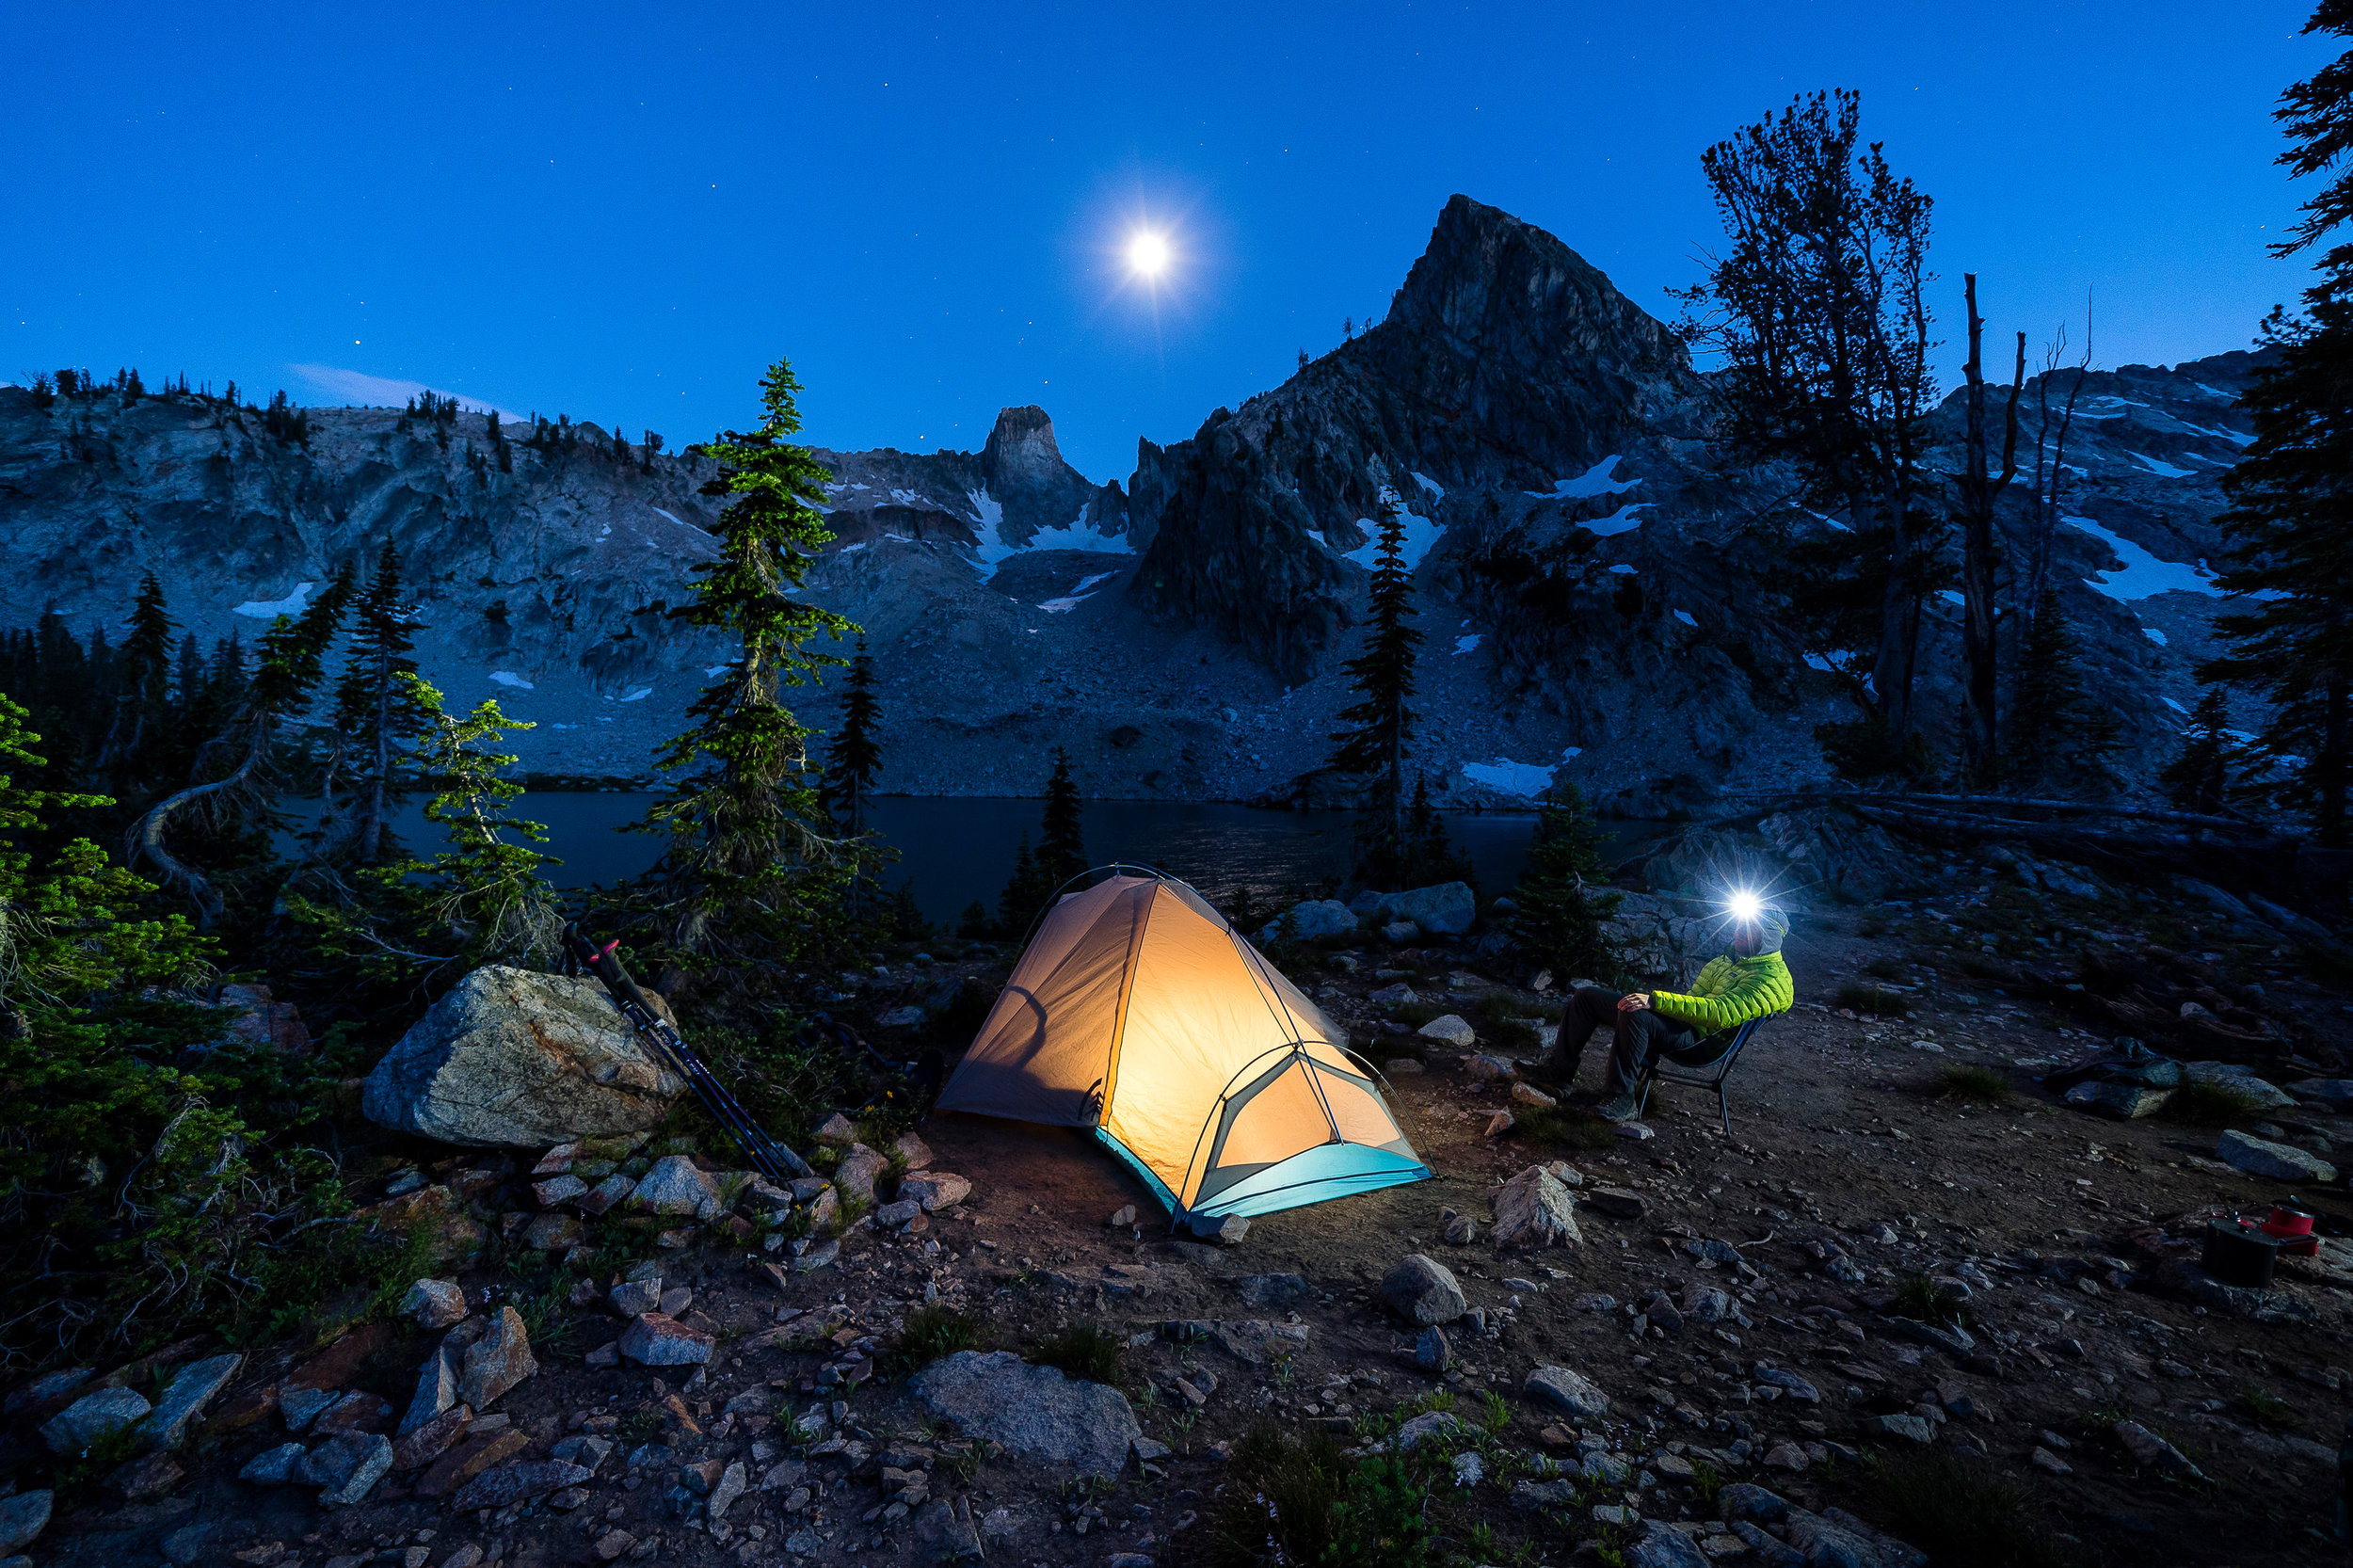 outdoor_lifestyle_Idaho_Ketchum_hiking_Stephen_Matera_7-21-18_DSC5266.jpg